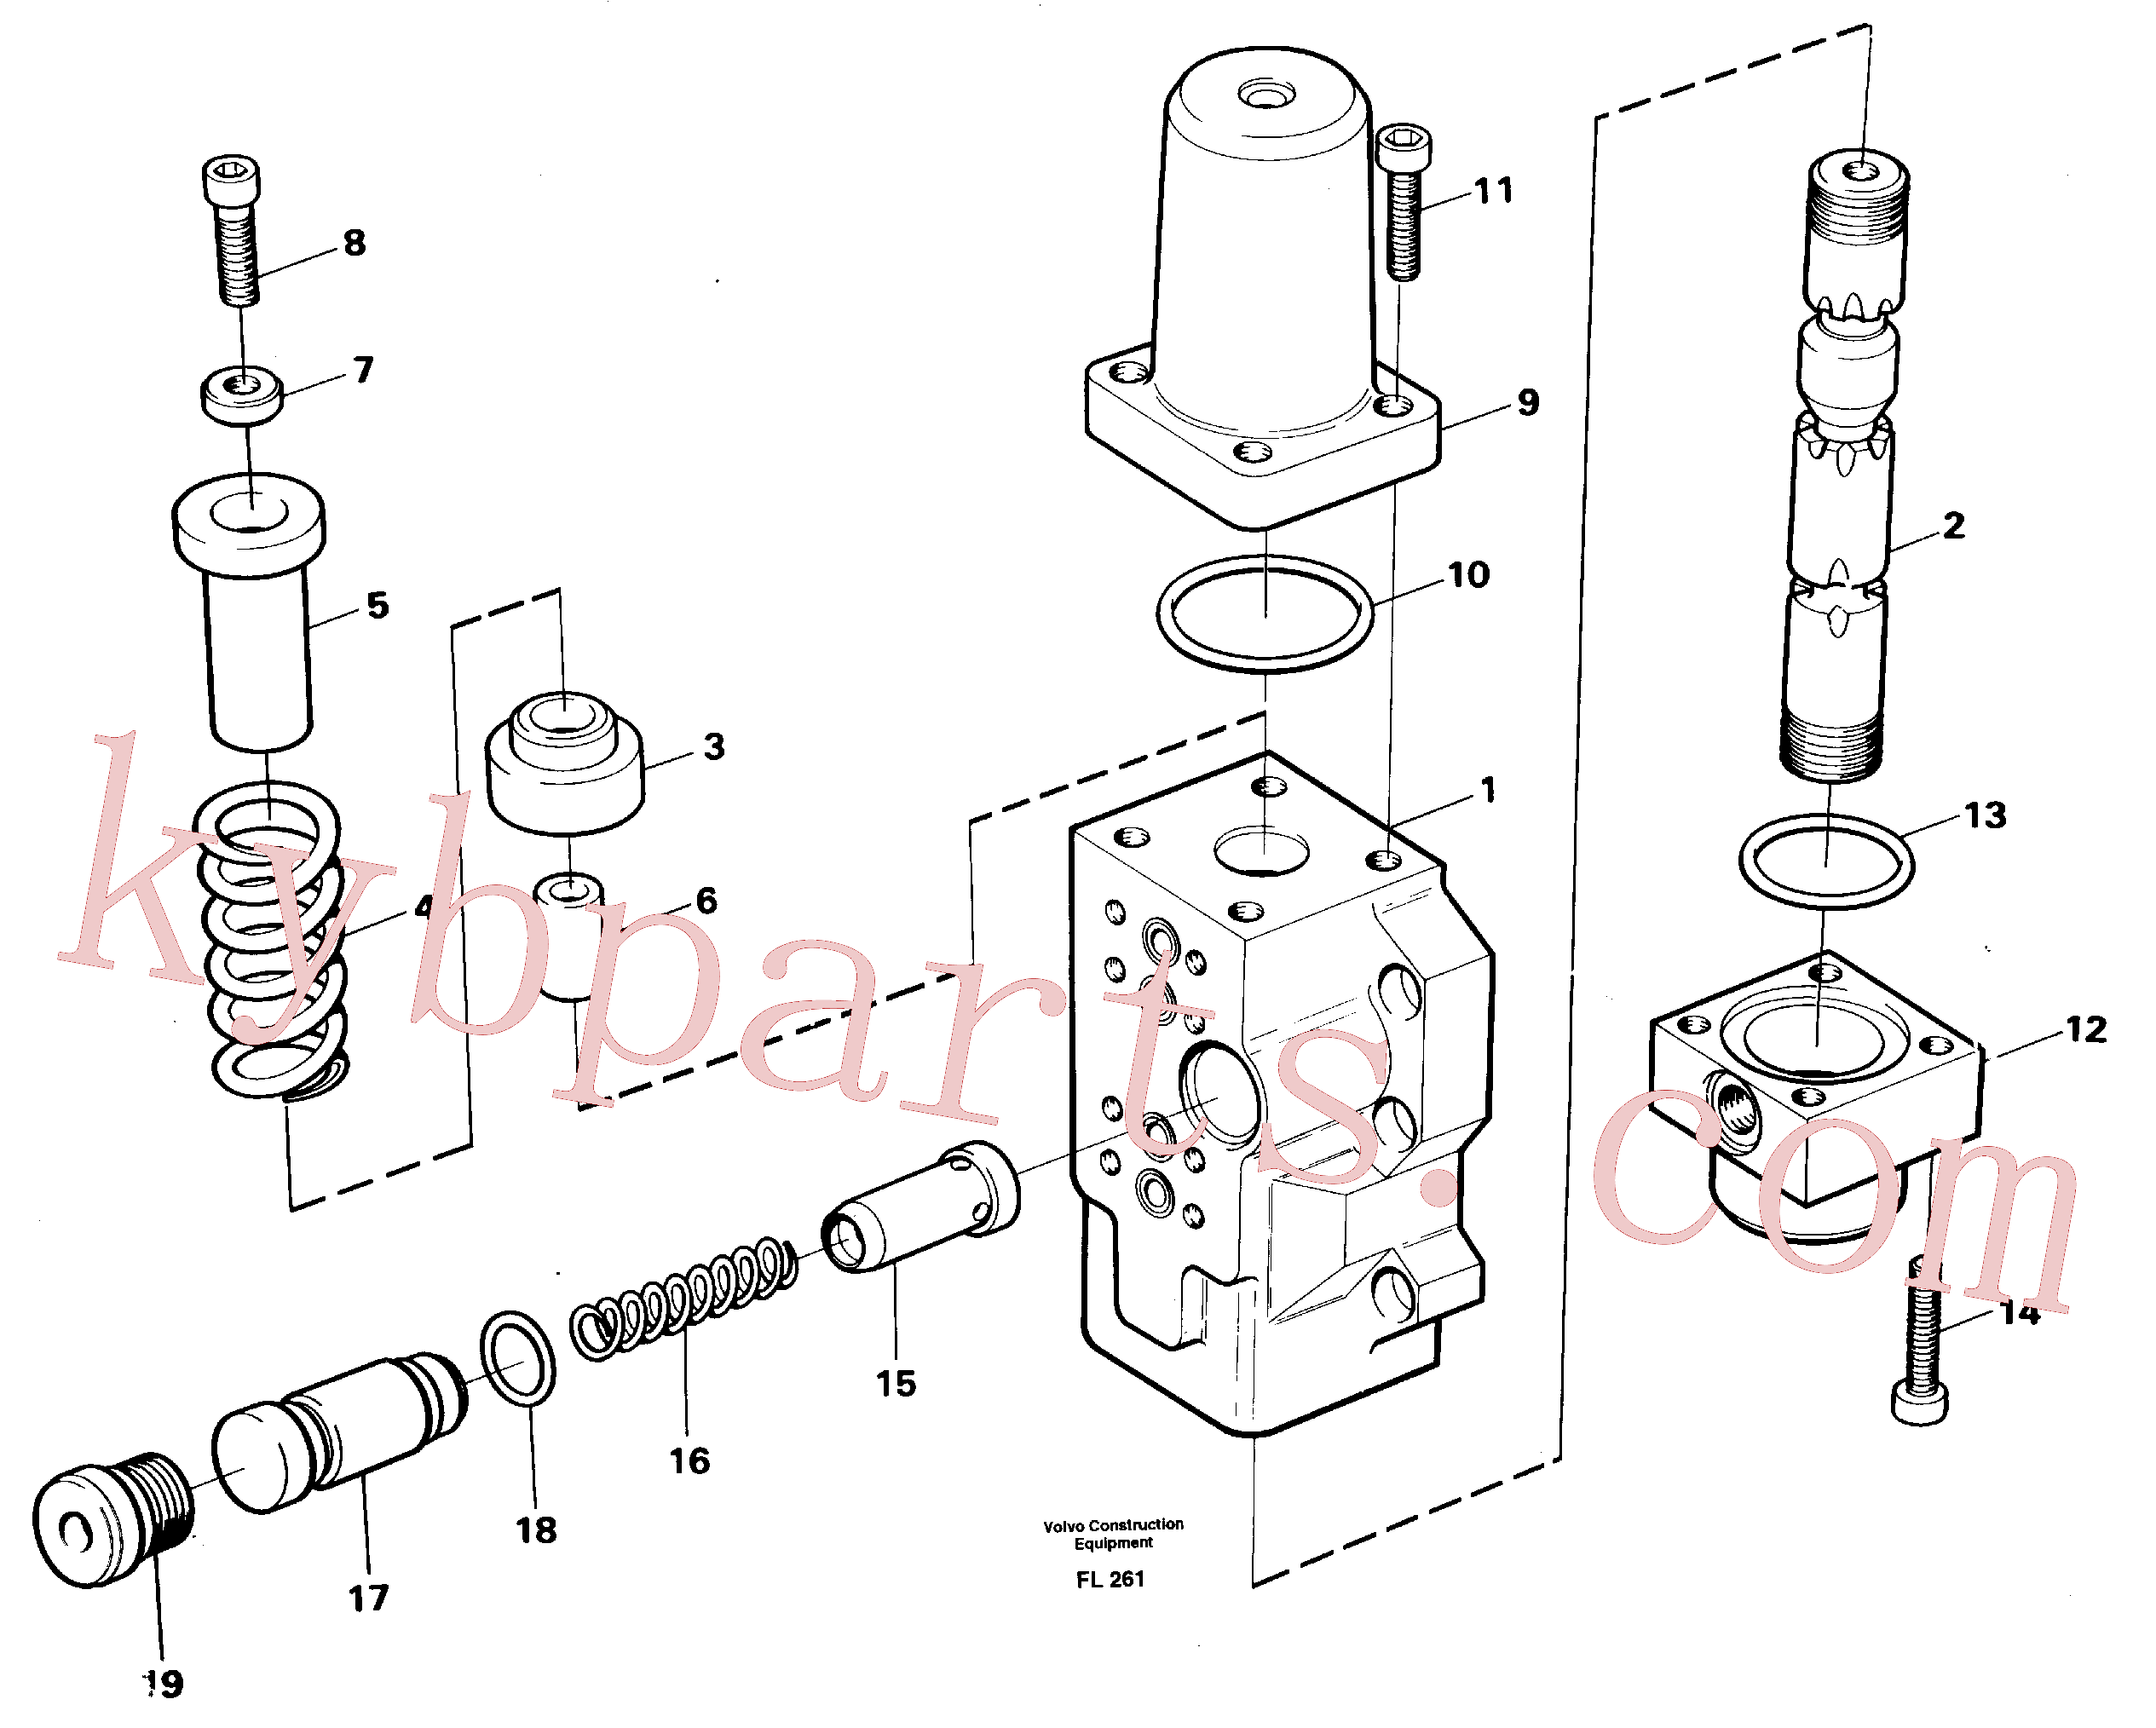 VOE14023271 for Volvo Four-way valve, boom primary(FL261 assembly)